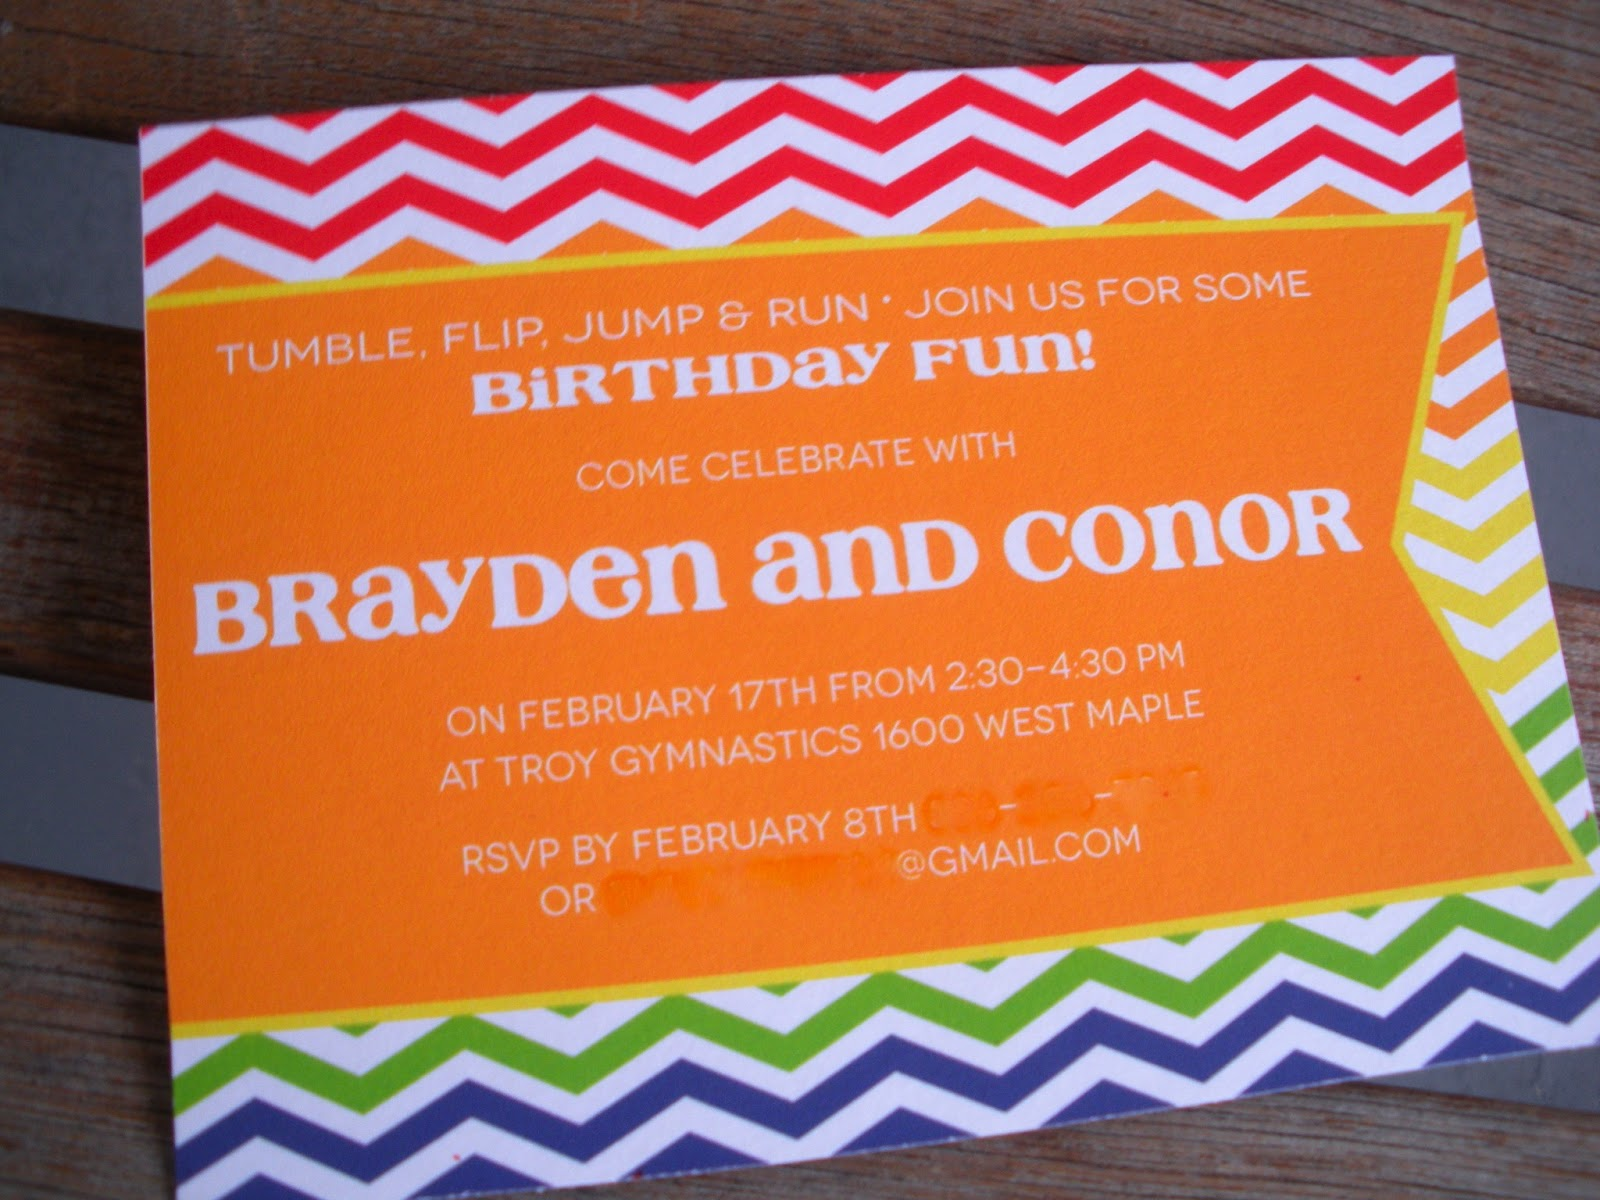 Vivian Elle Invitations: Brayden and Conor\'s Birthday Party Invites